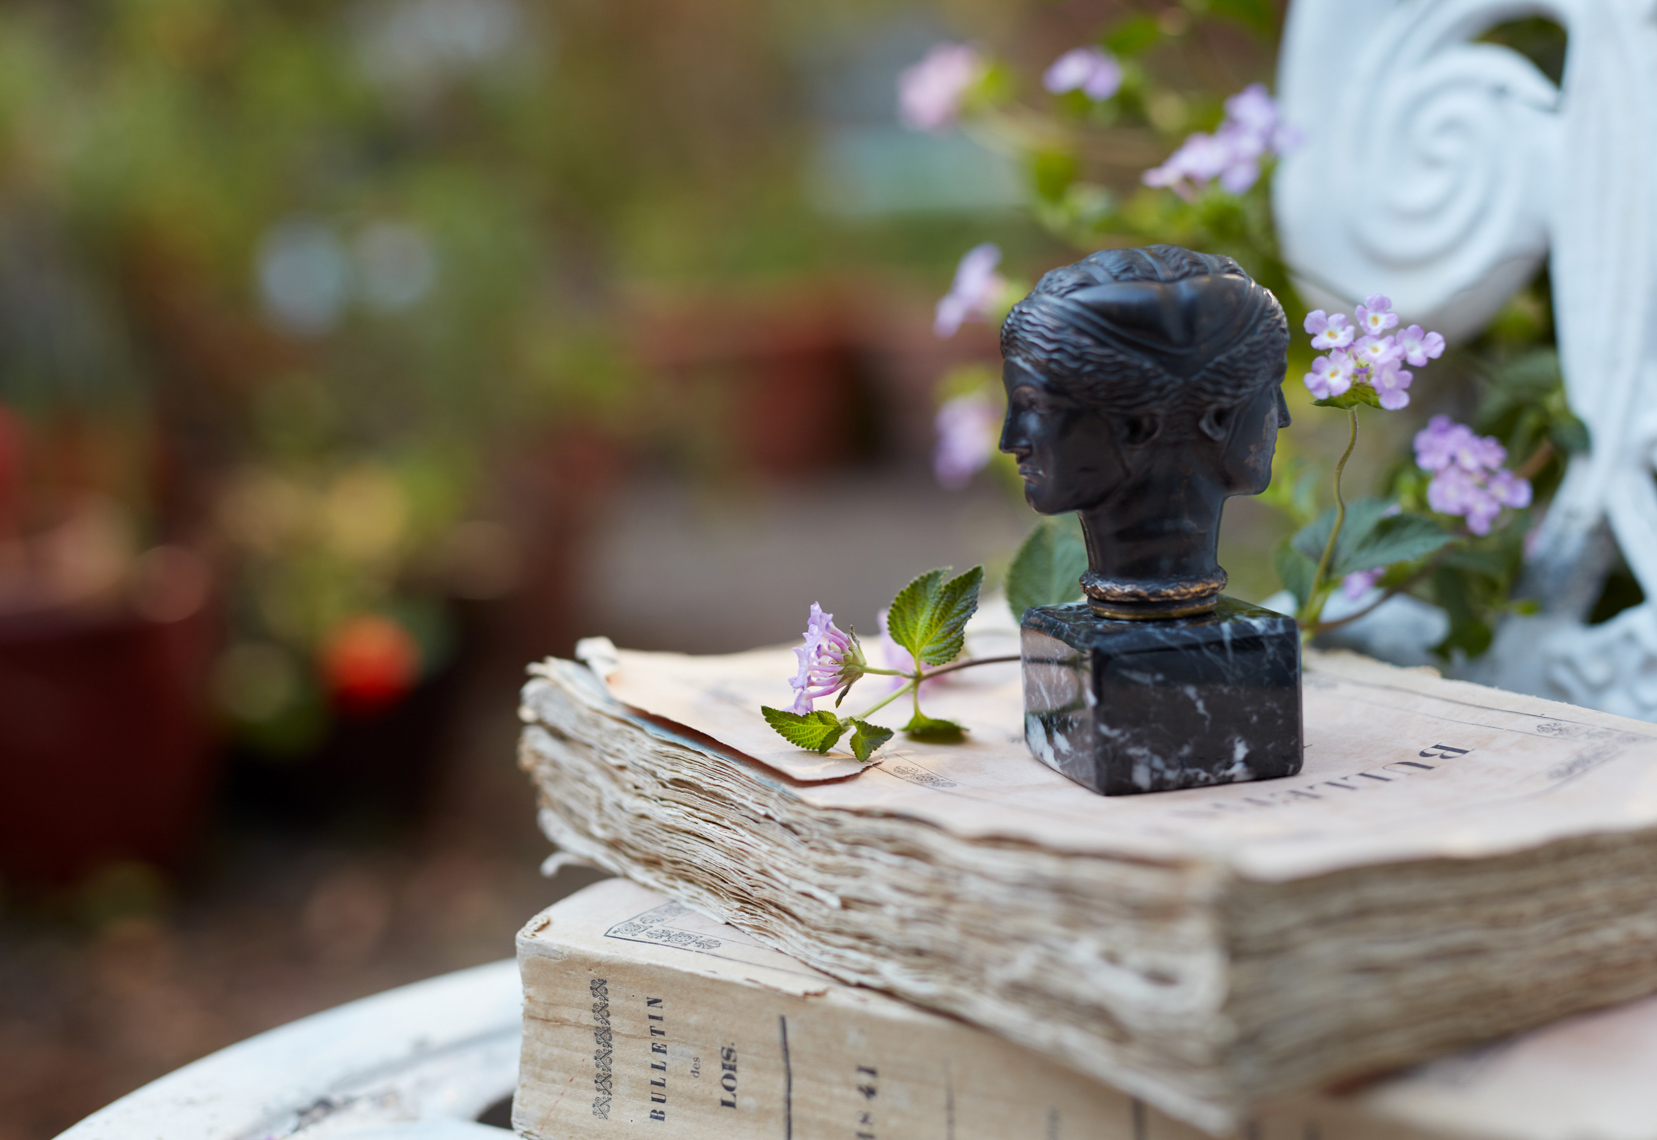 Ancient two-faced sculpture on old book in garden